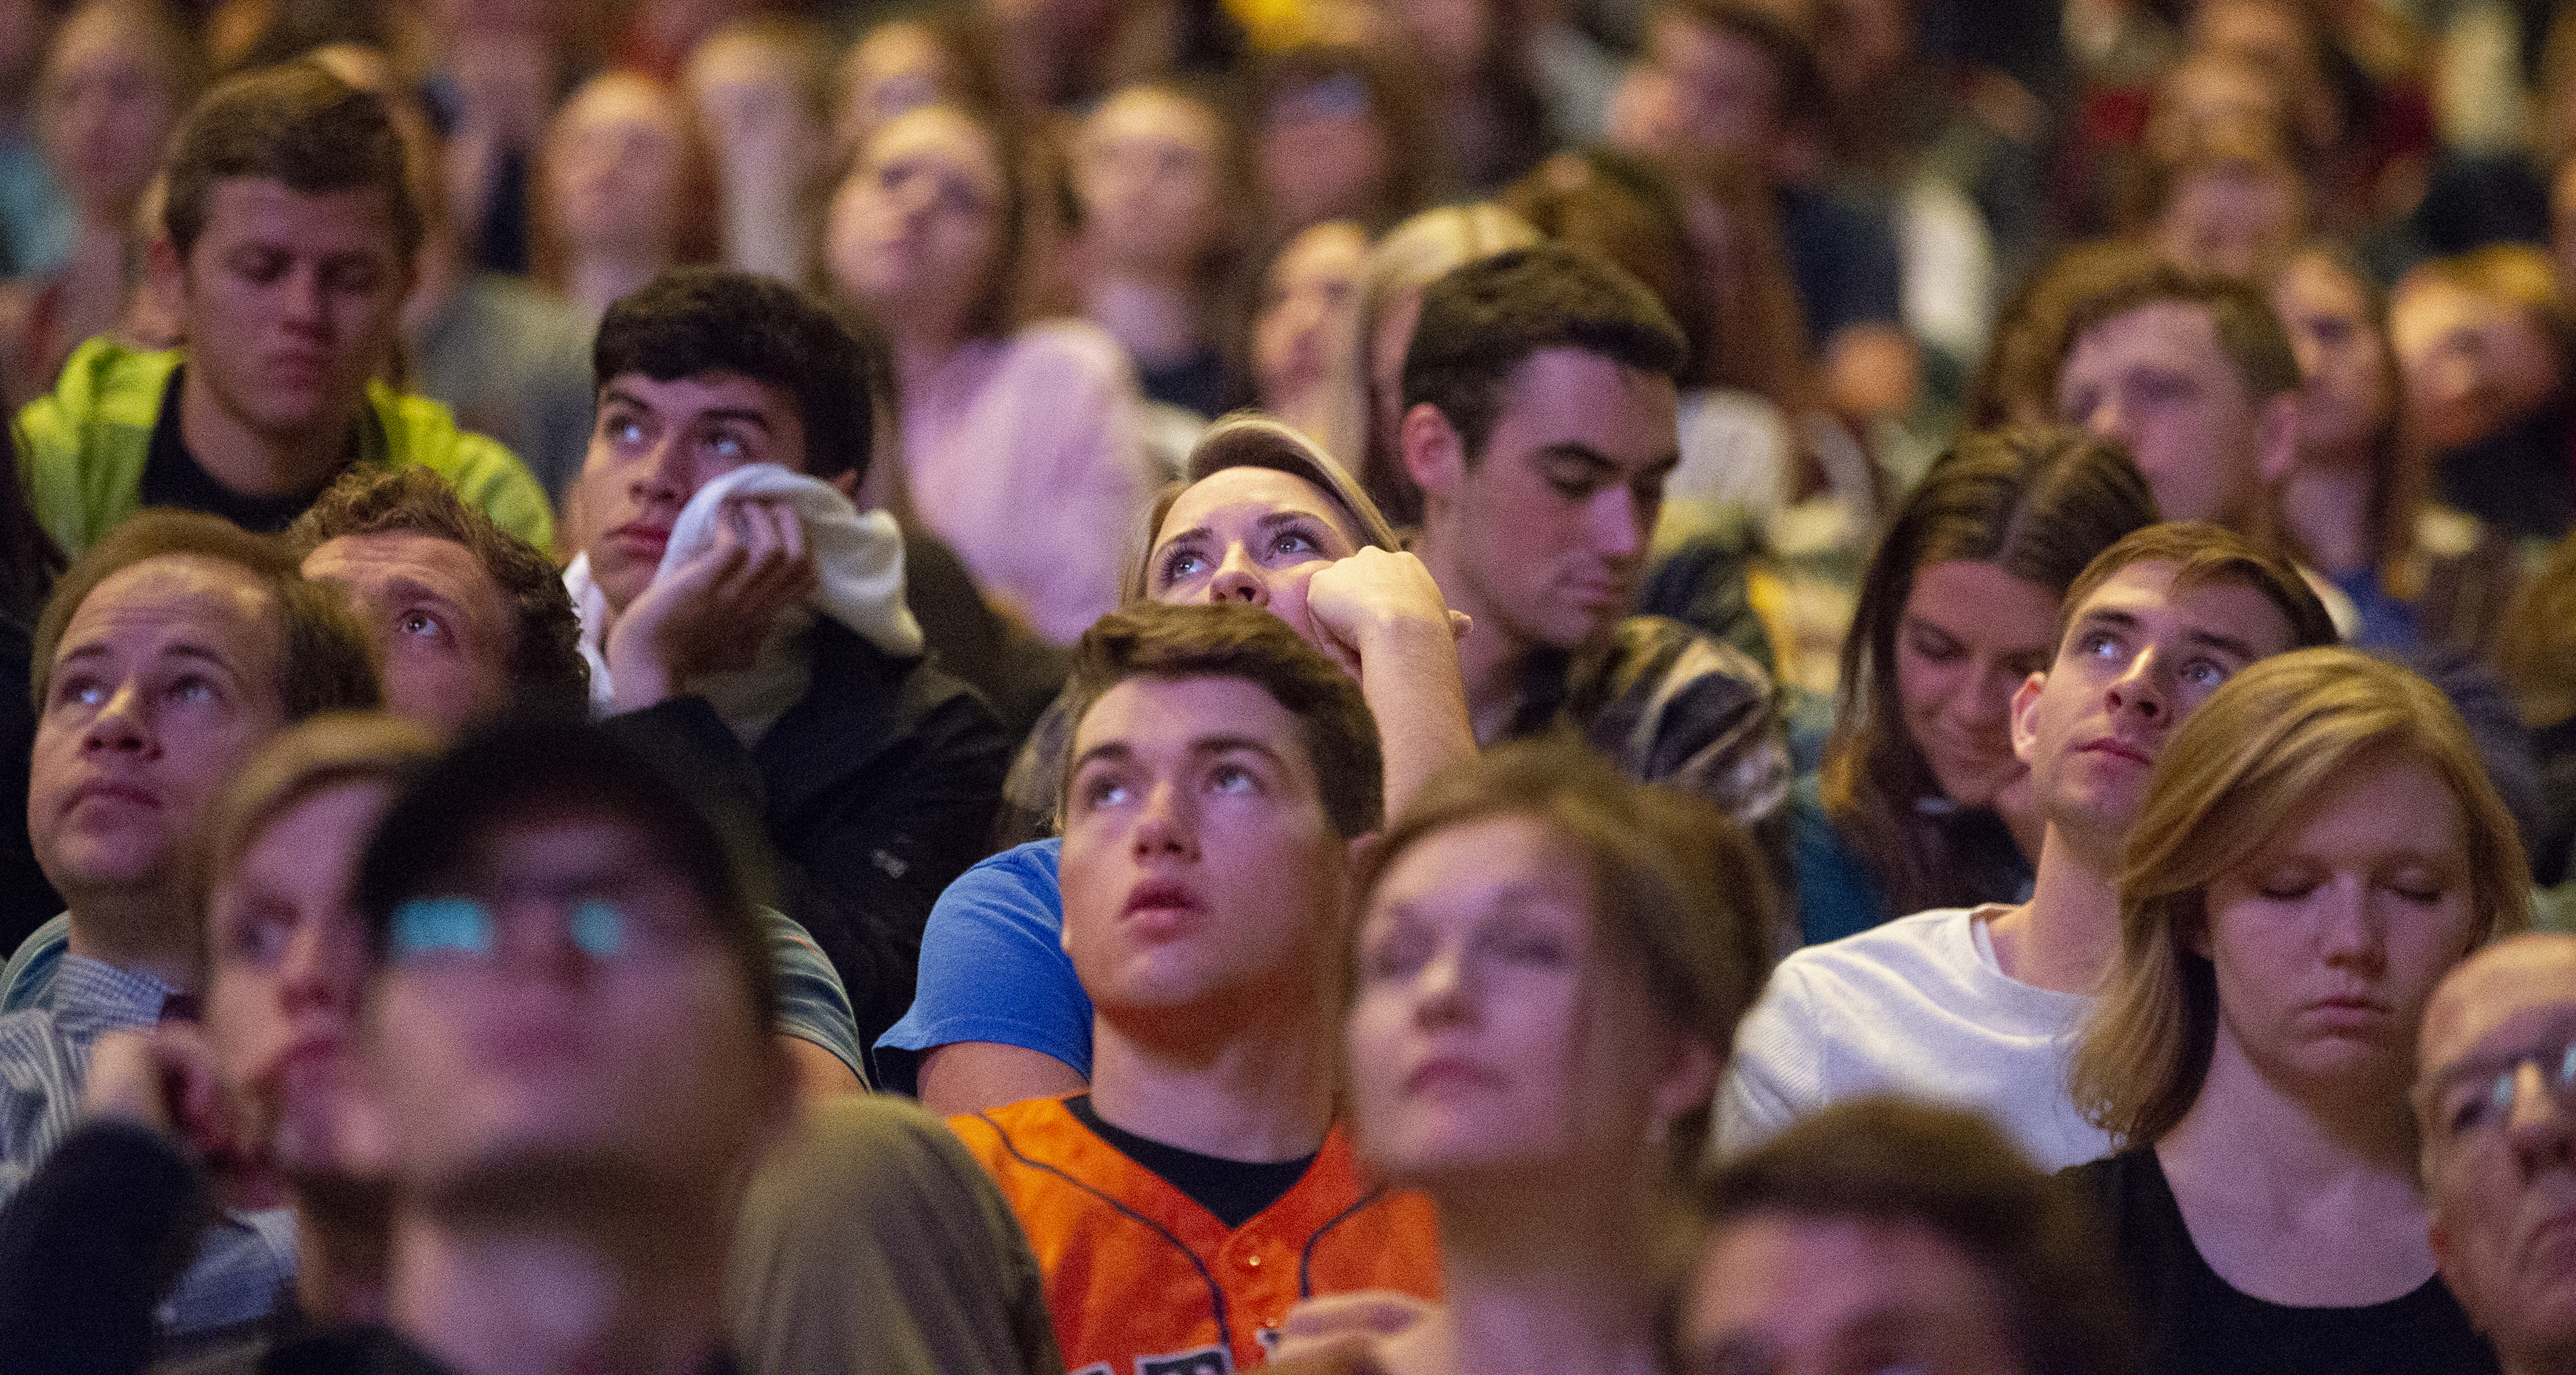 Crowd members watch and listen as Elder Gerrit W. Gong of the Quorum of the Twelve Apostles speaks at a BYU campus devotional on Tuesday, Oct. 16, 2018.